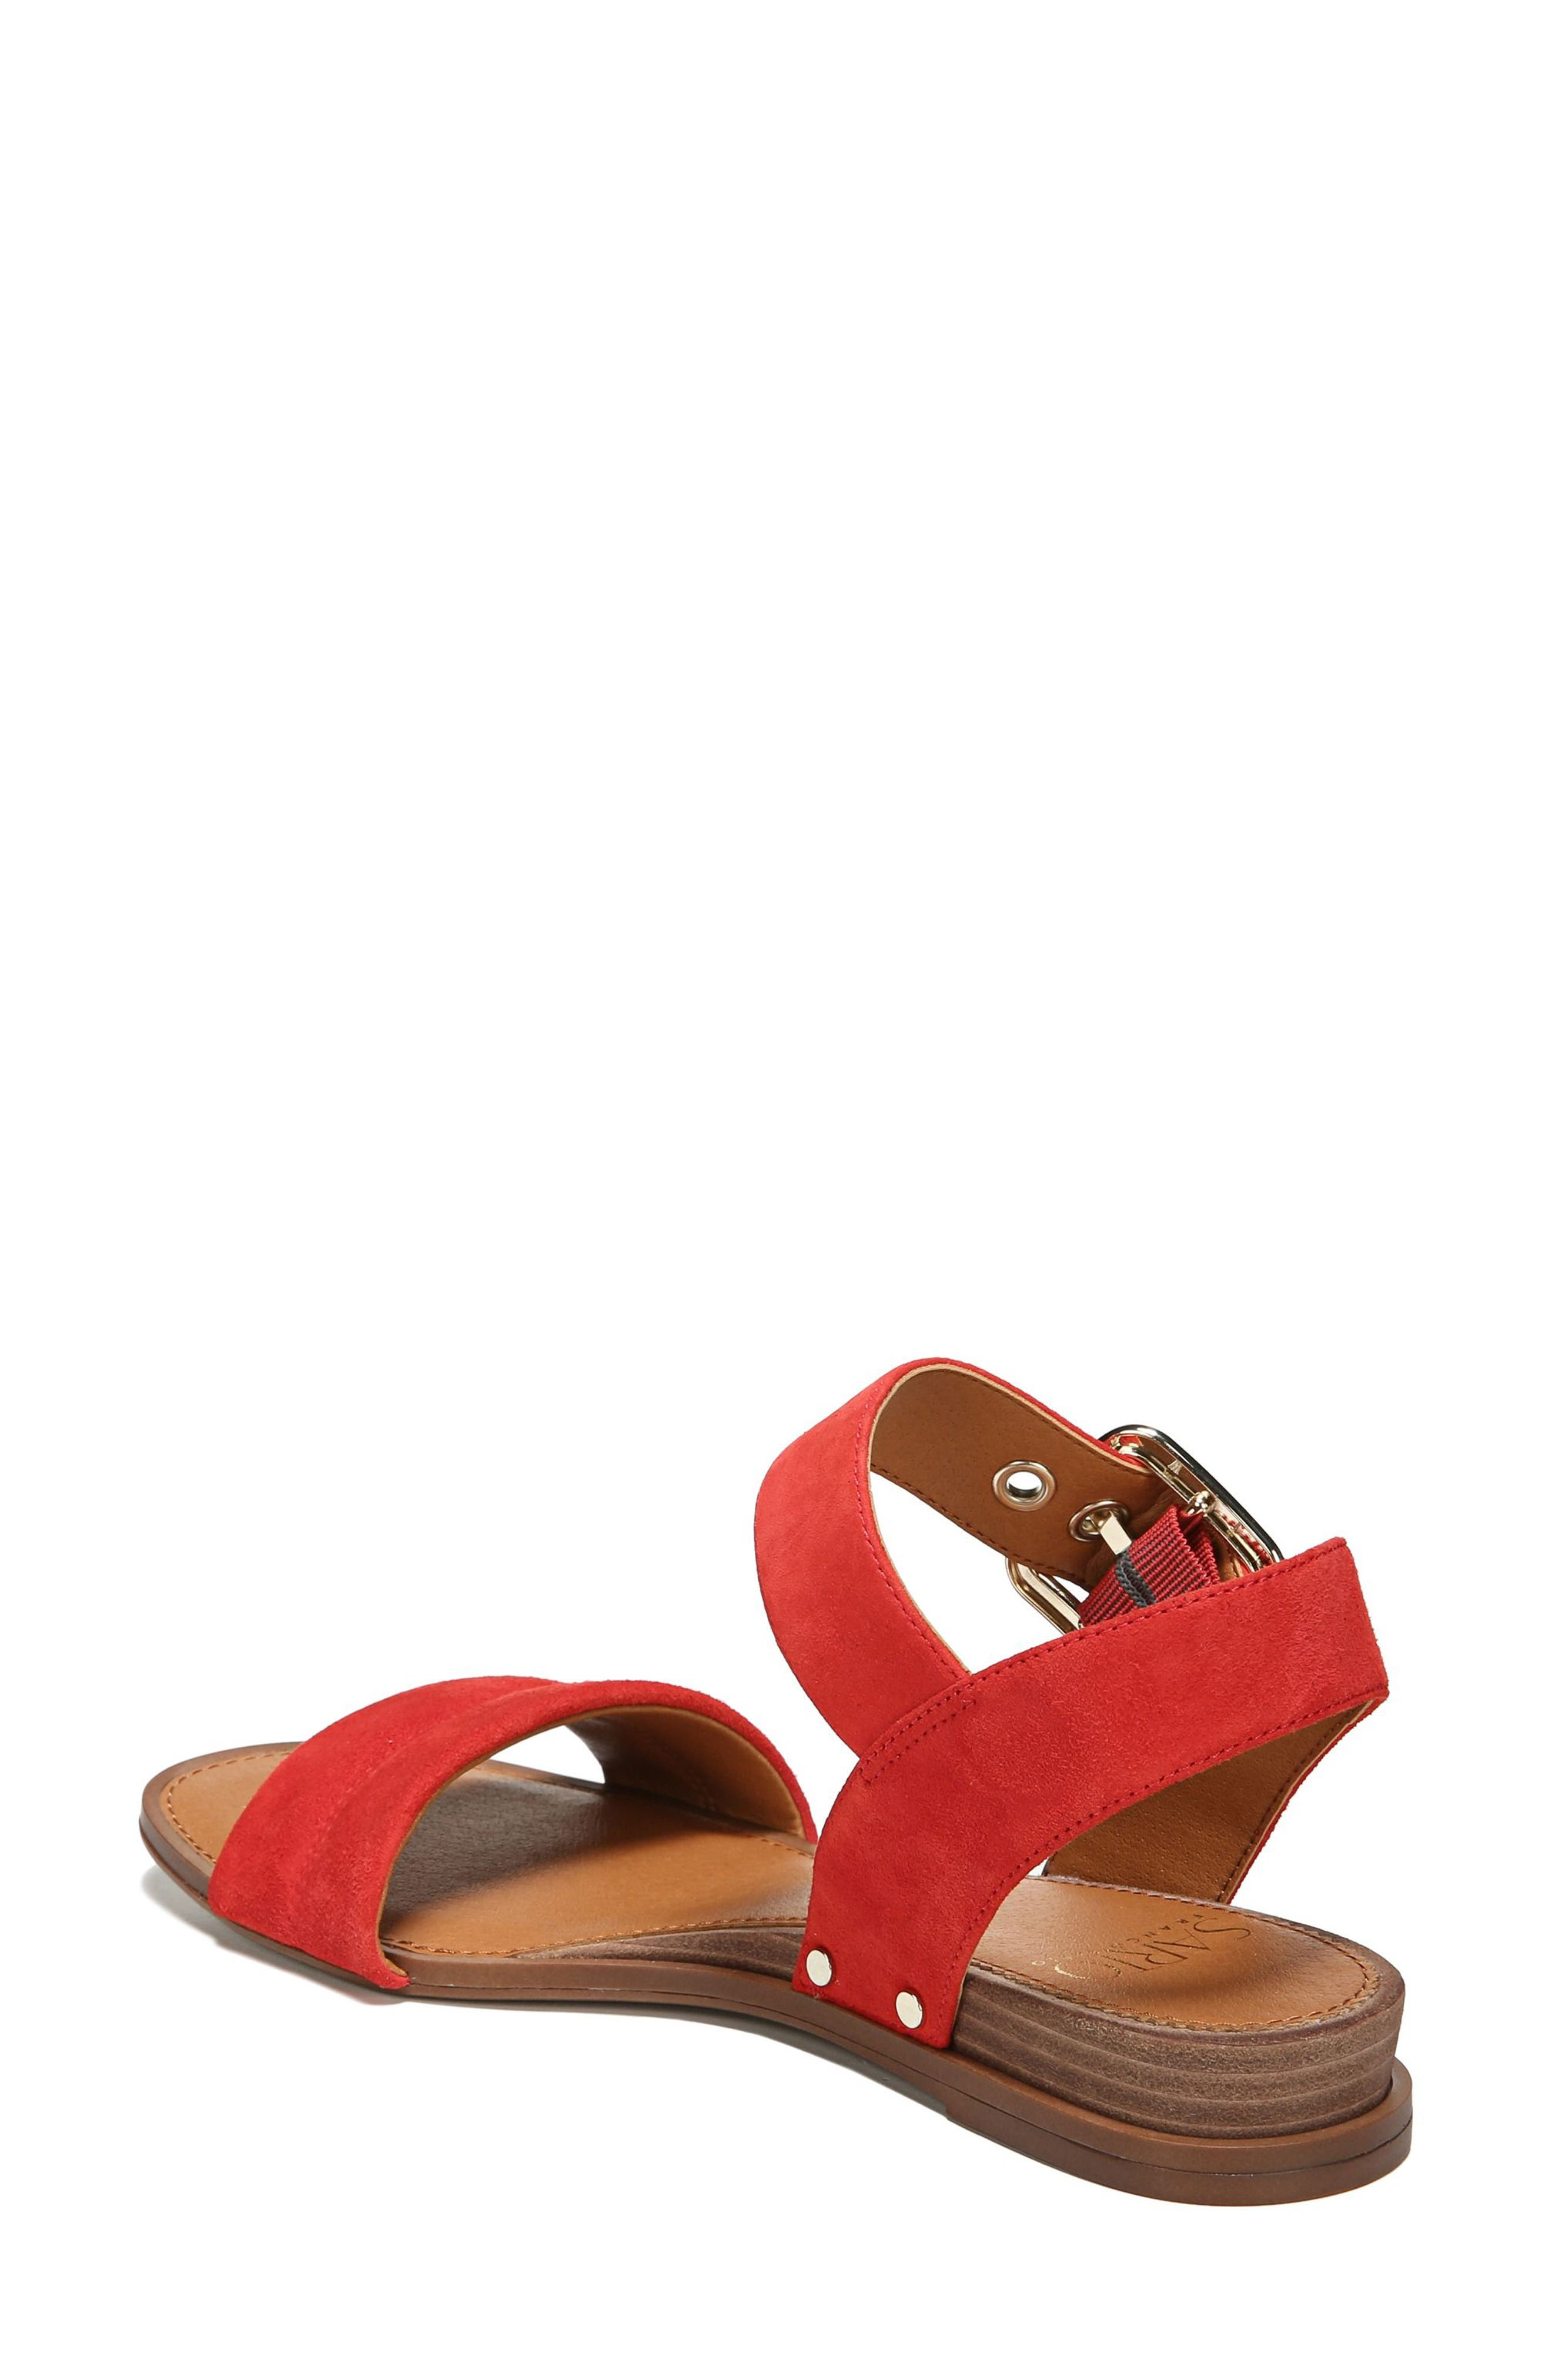 Patterson Low Wedge Sandal,                             Alternate thumbnail 2, color,                             Pop Red Suede